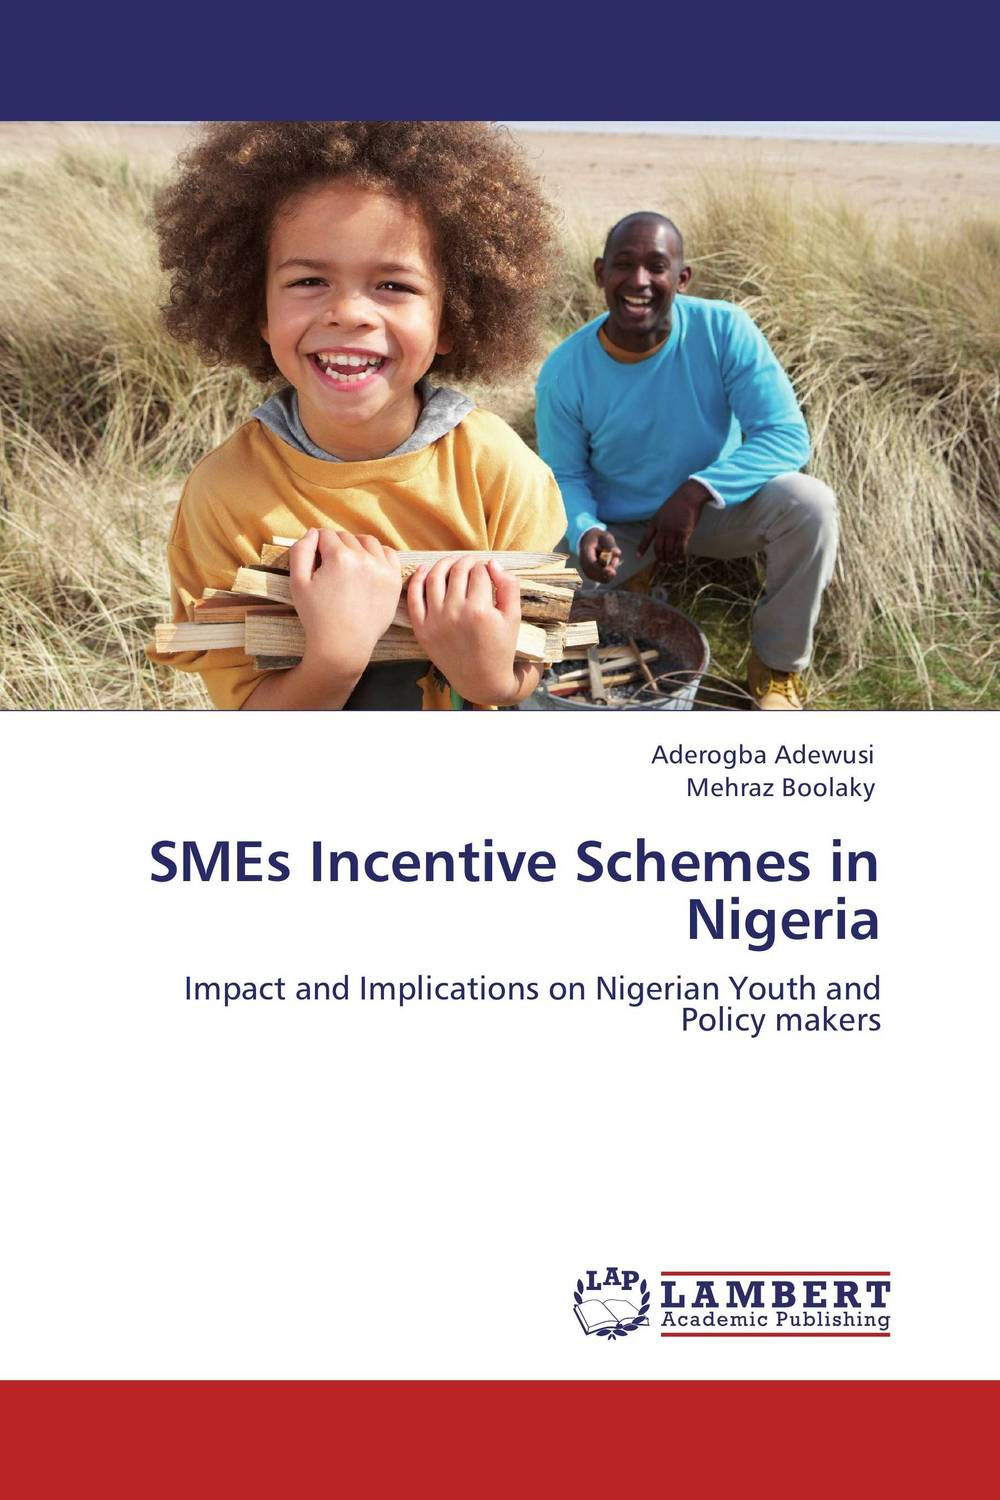 SMEs Incentive Schemes in Nigeria the submission